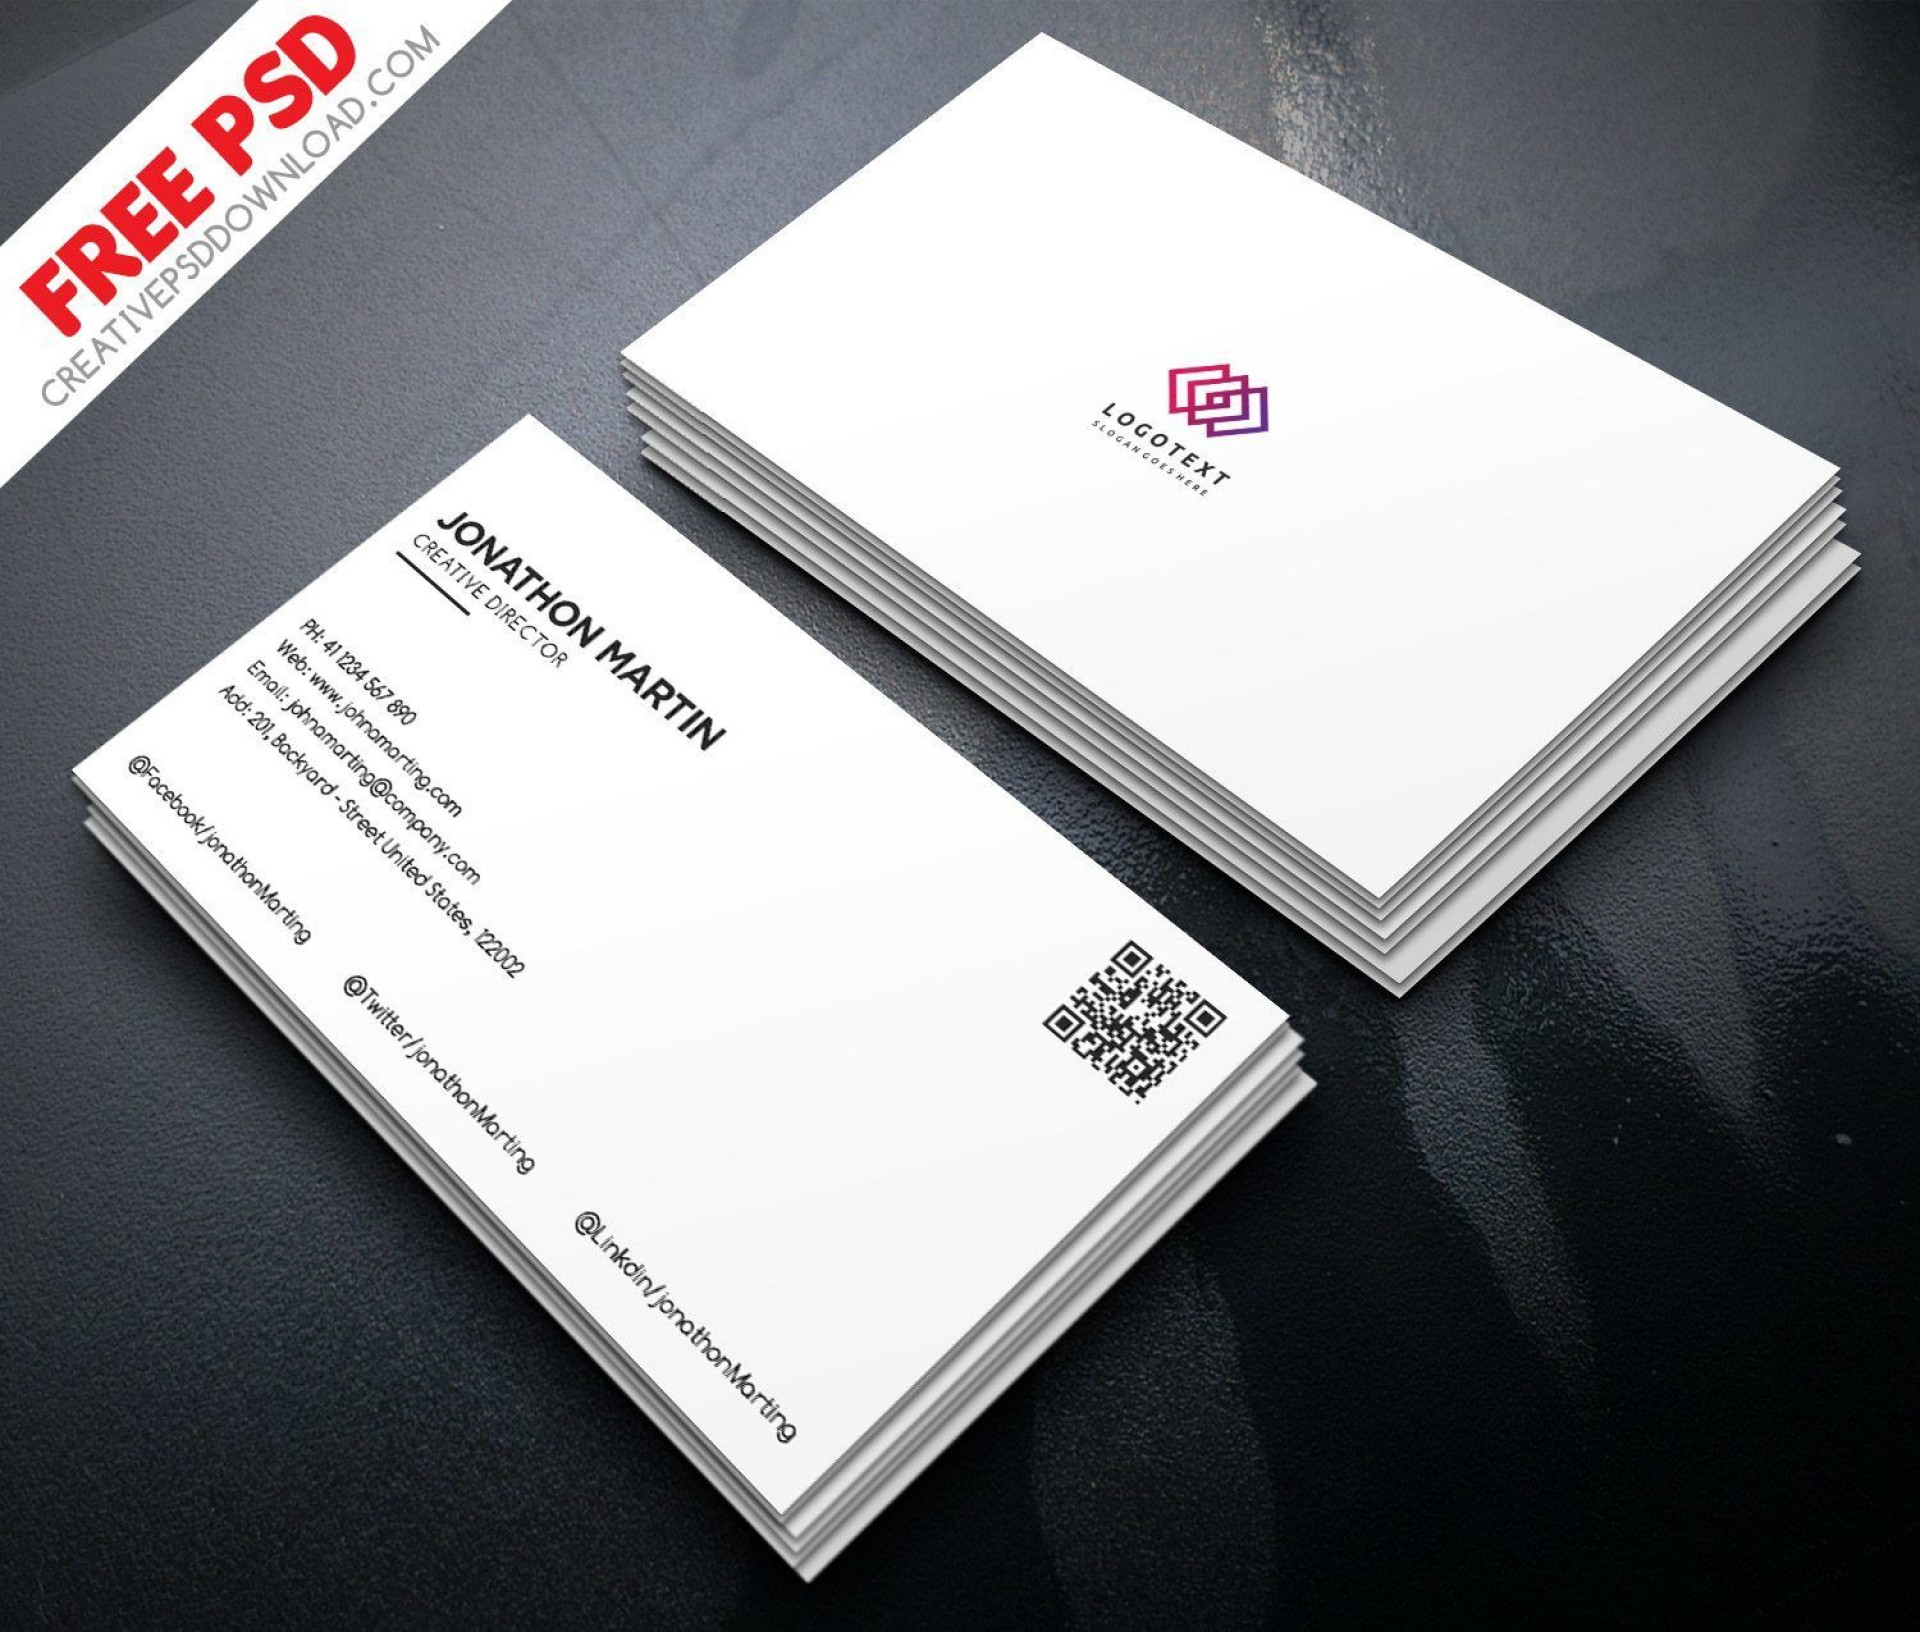 009 Fascinating Minimalist Busines Card Template Psd Picture 1920